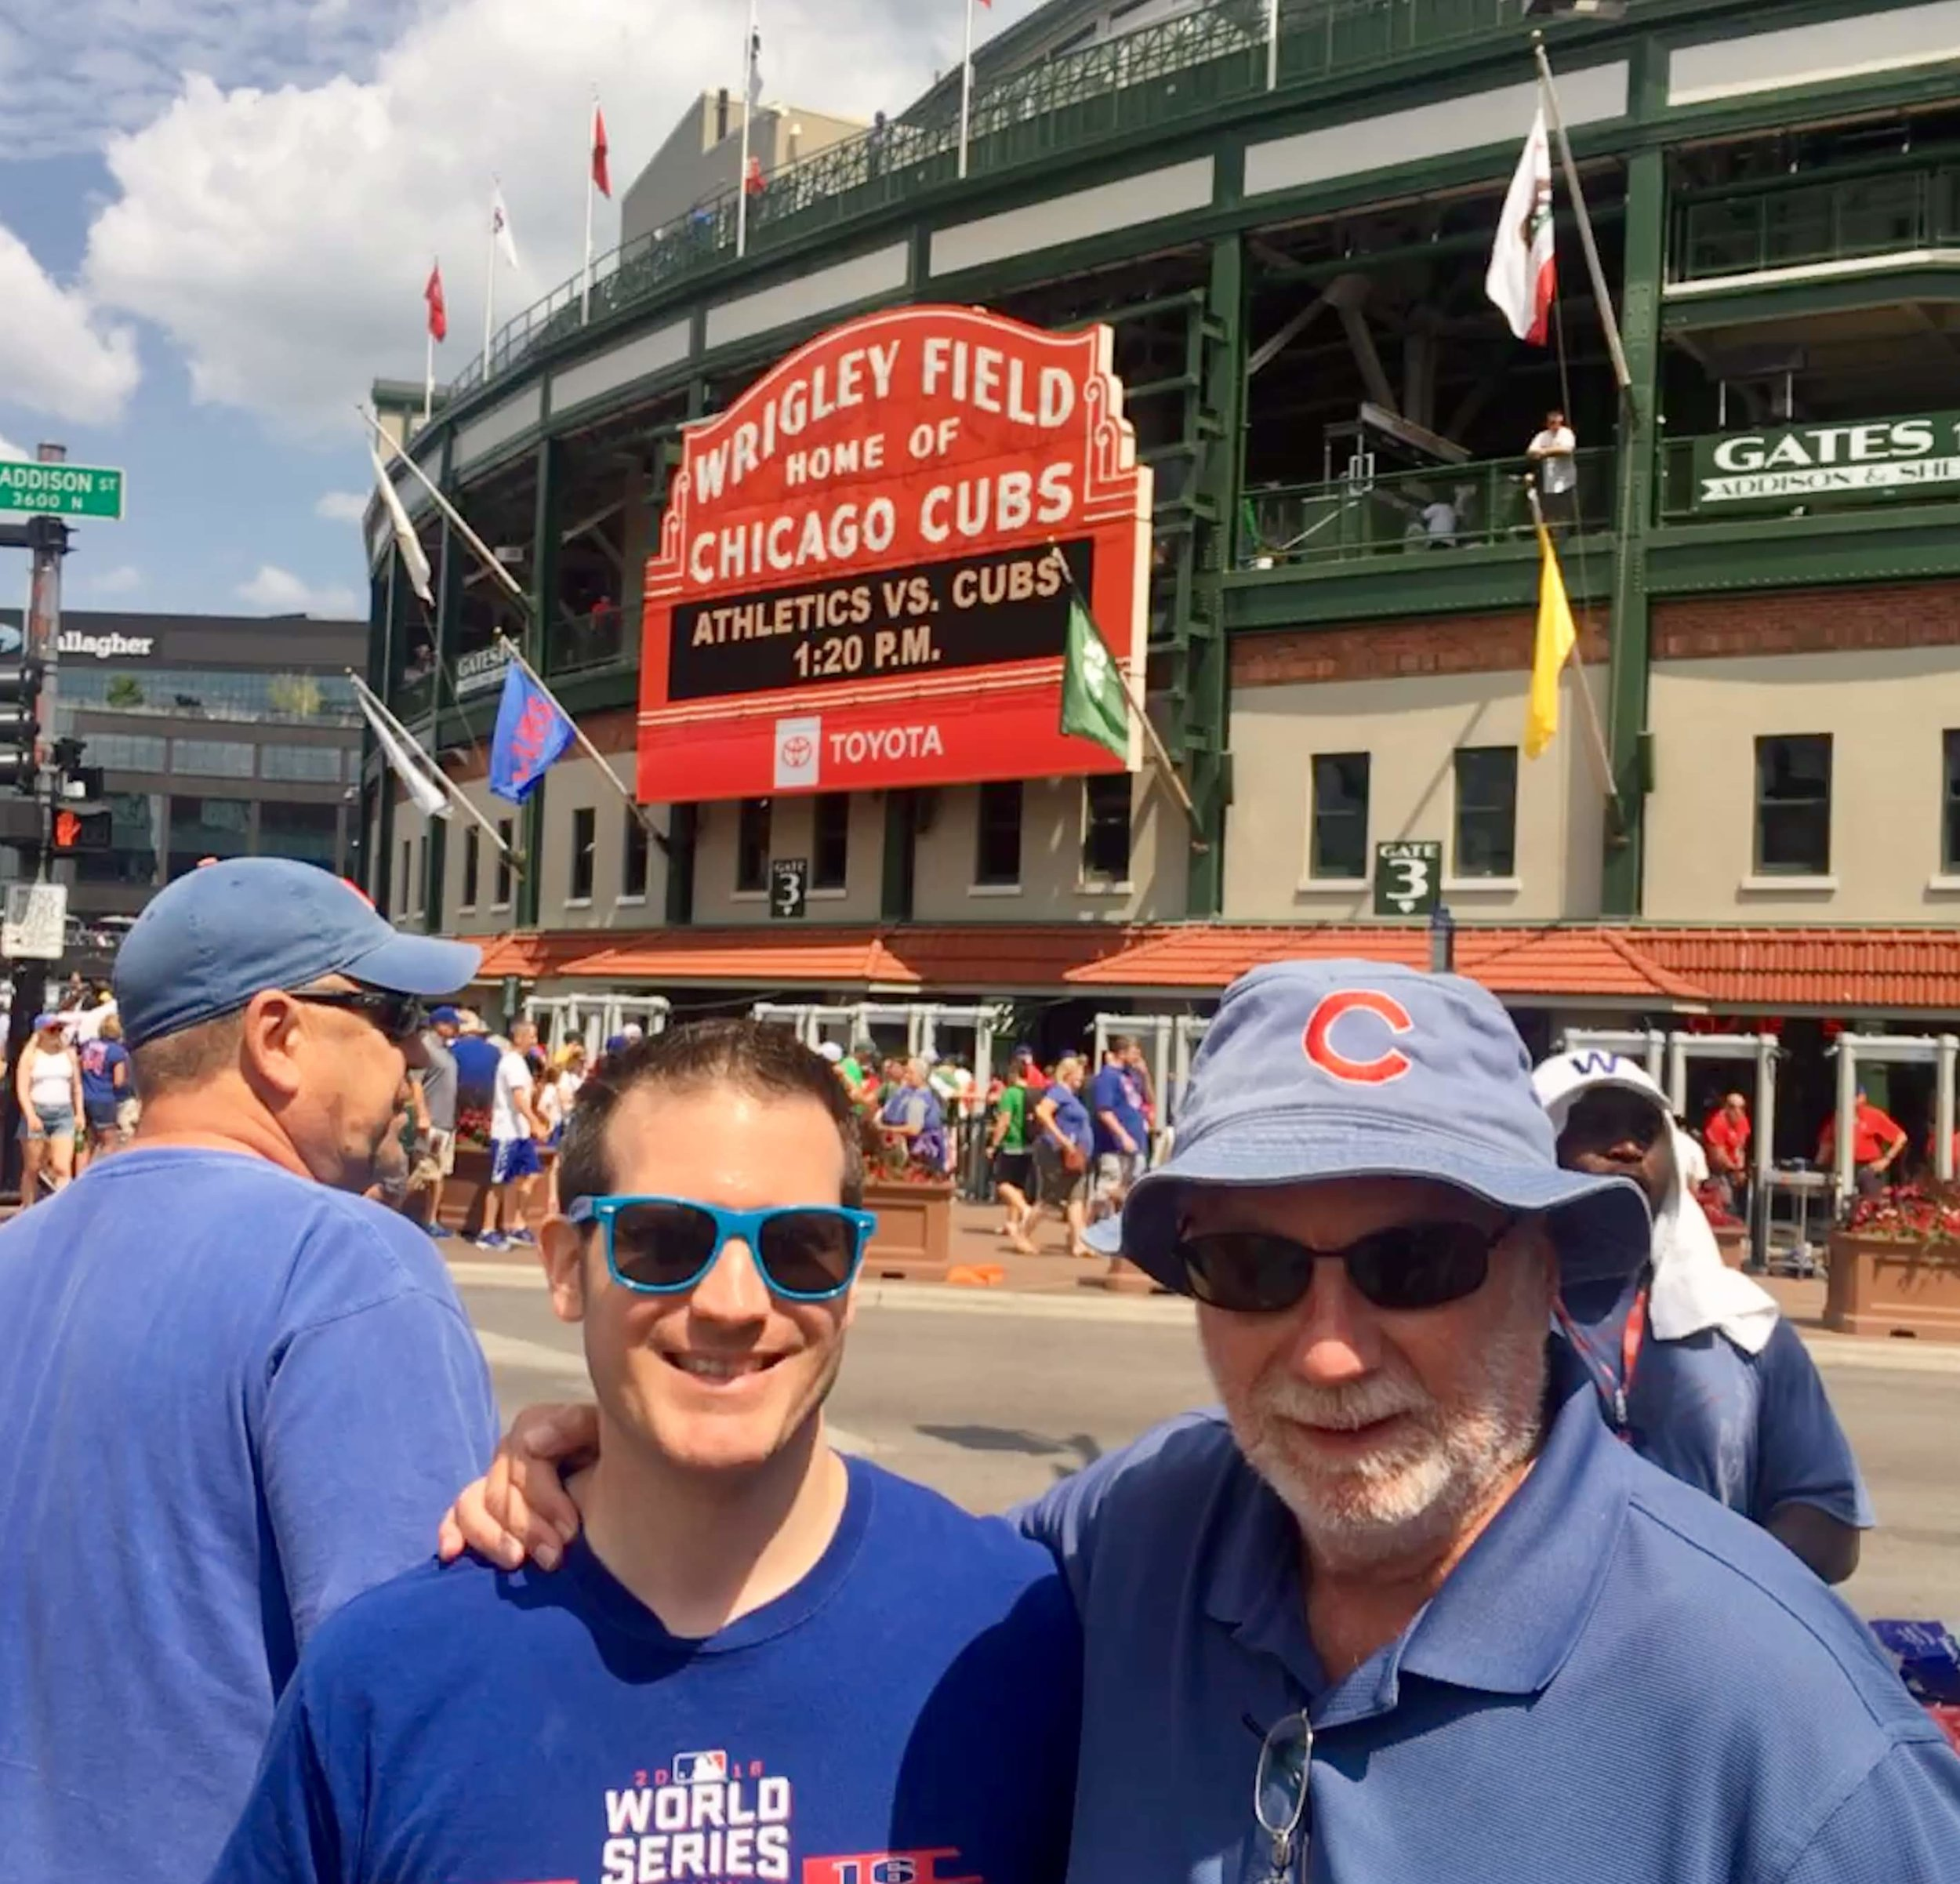 Father and son at the shrine of baseball